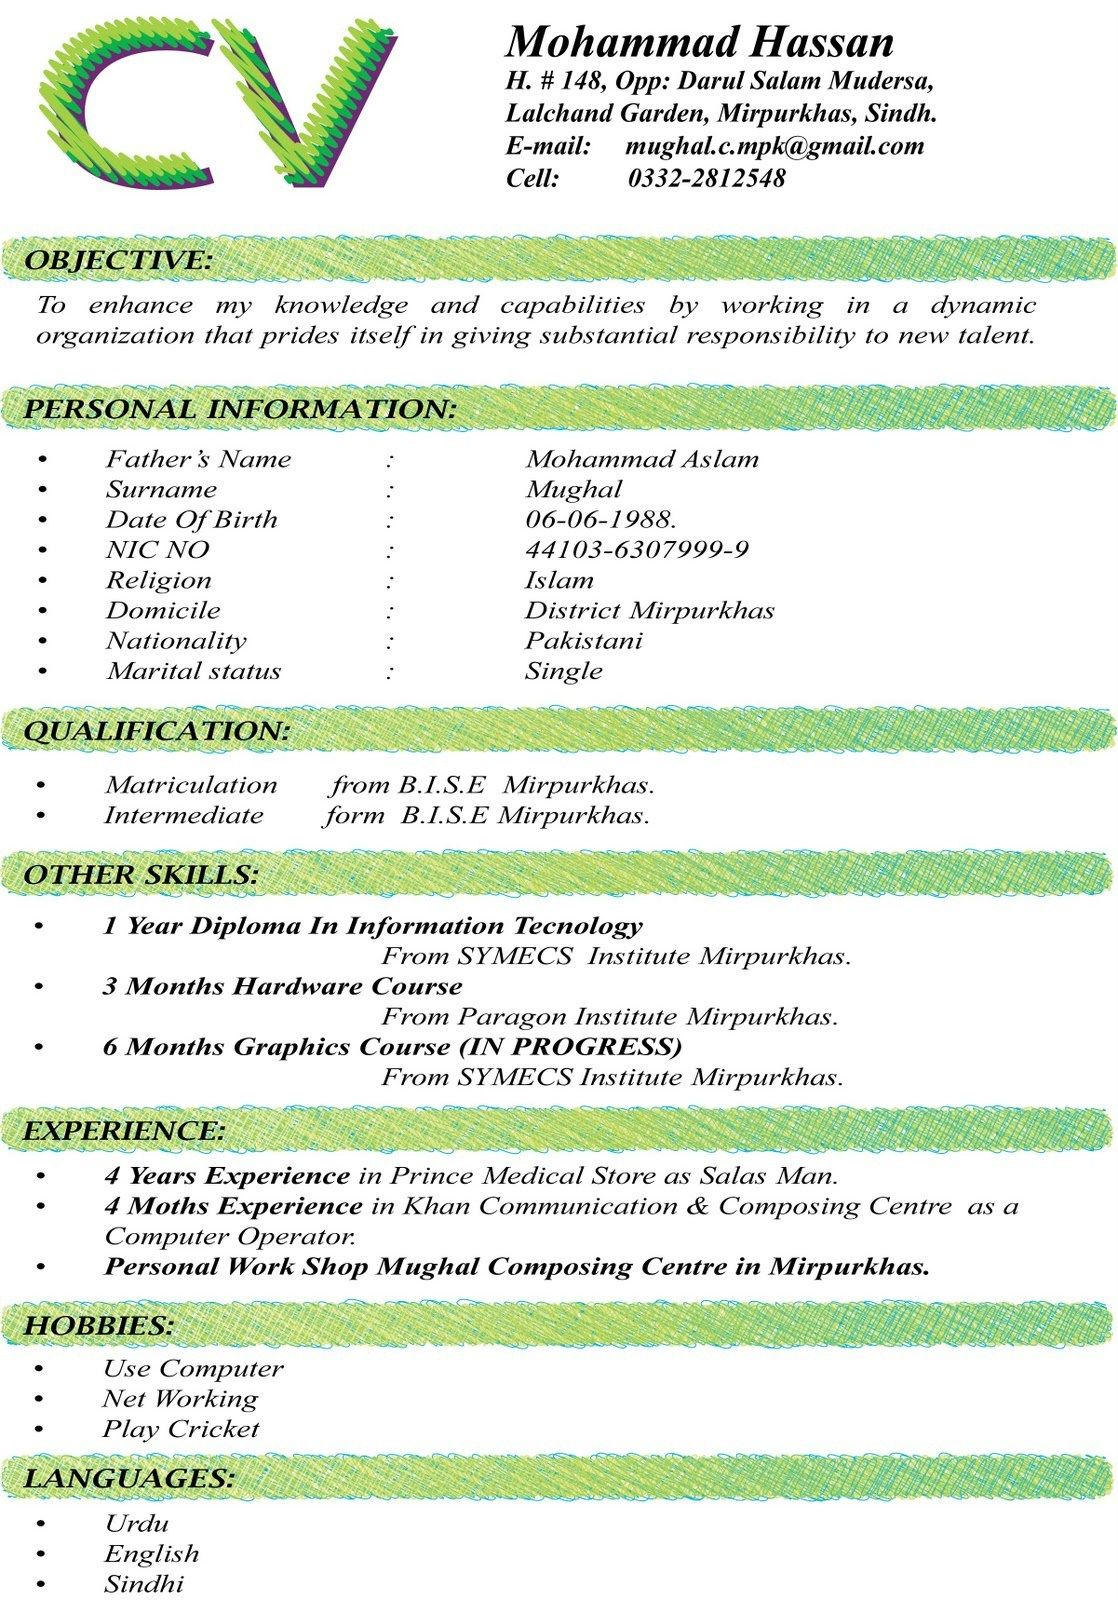 cv format to download free cv templates download cv format format cv